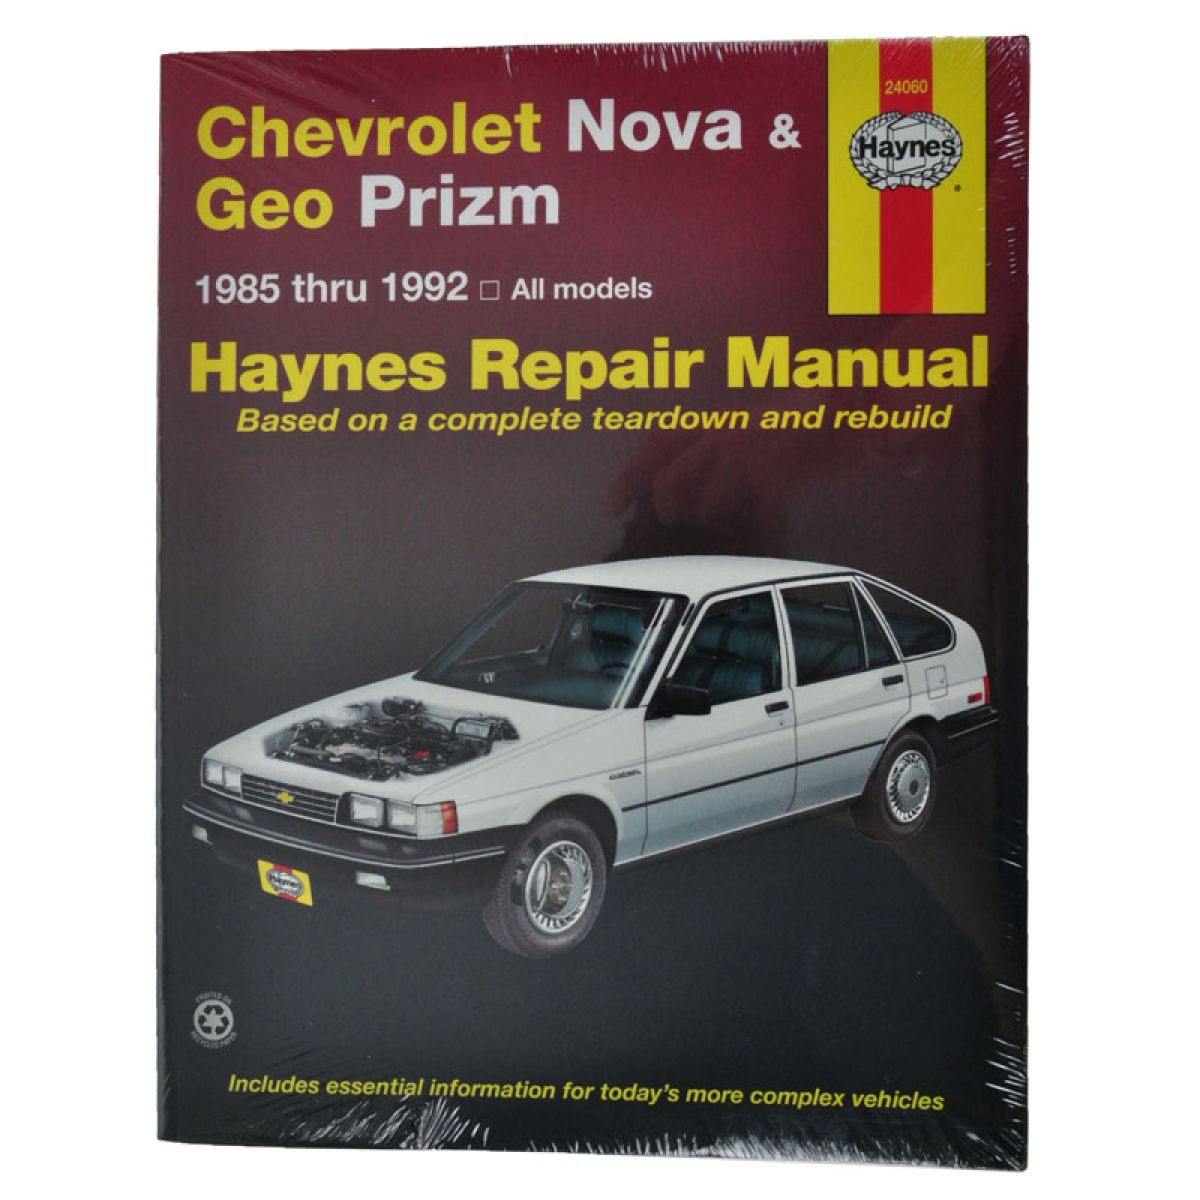 Haynes Repair Manual for Geo Prizm Chevy Nova